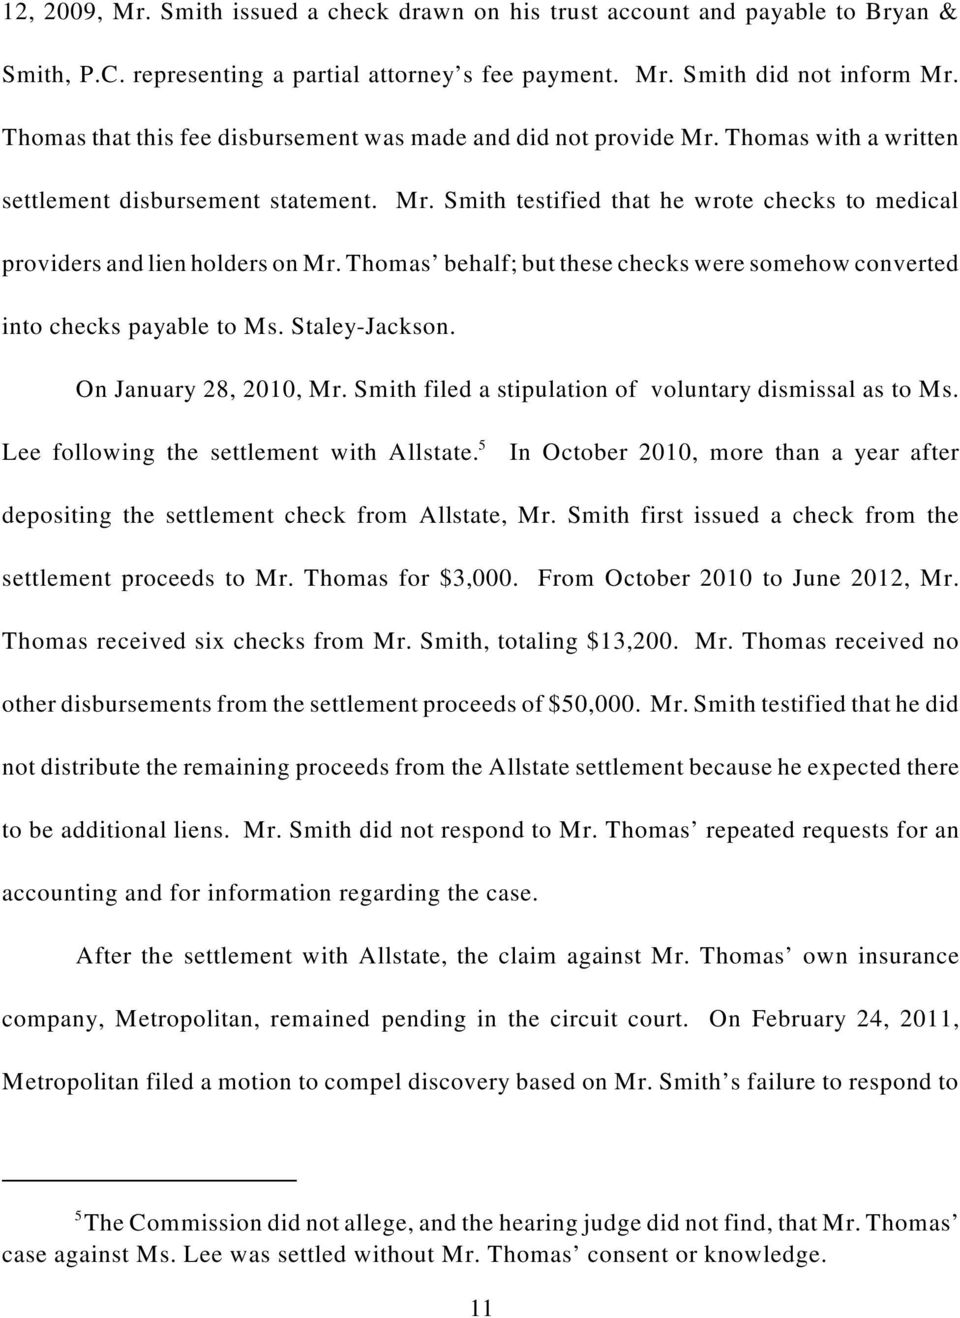 Thomas behalf; but these checks were somehow converted into checks payable to Ms. Staley-Jackson. On January 28, 2010, Mr. Smith filed a stipulation of voluntary dismissal as to Ms.